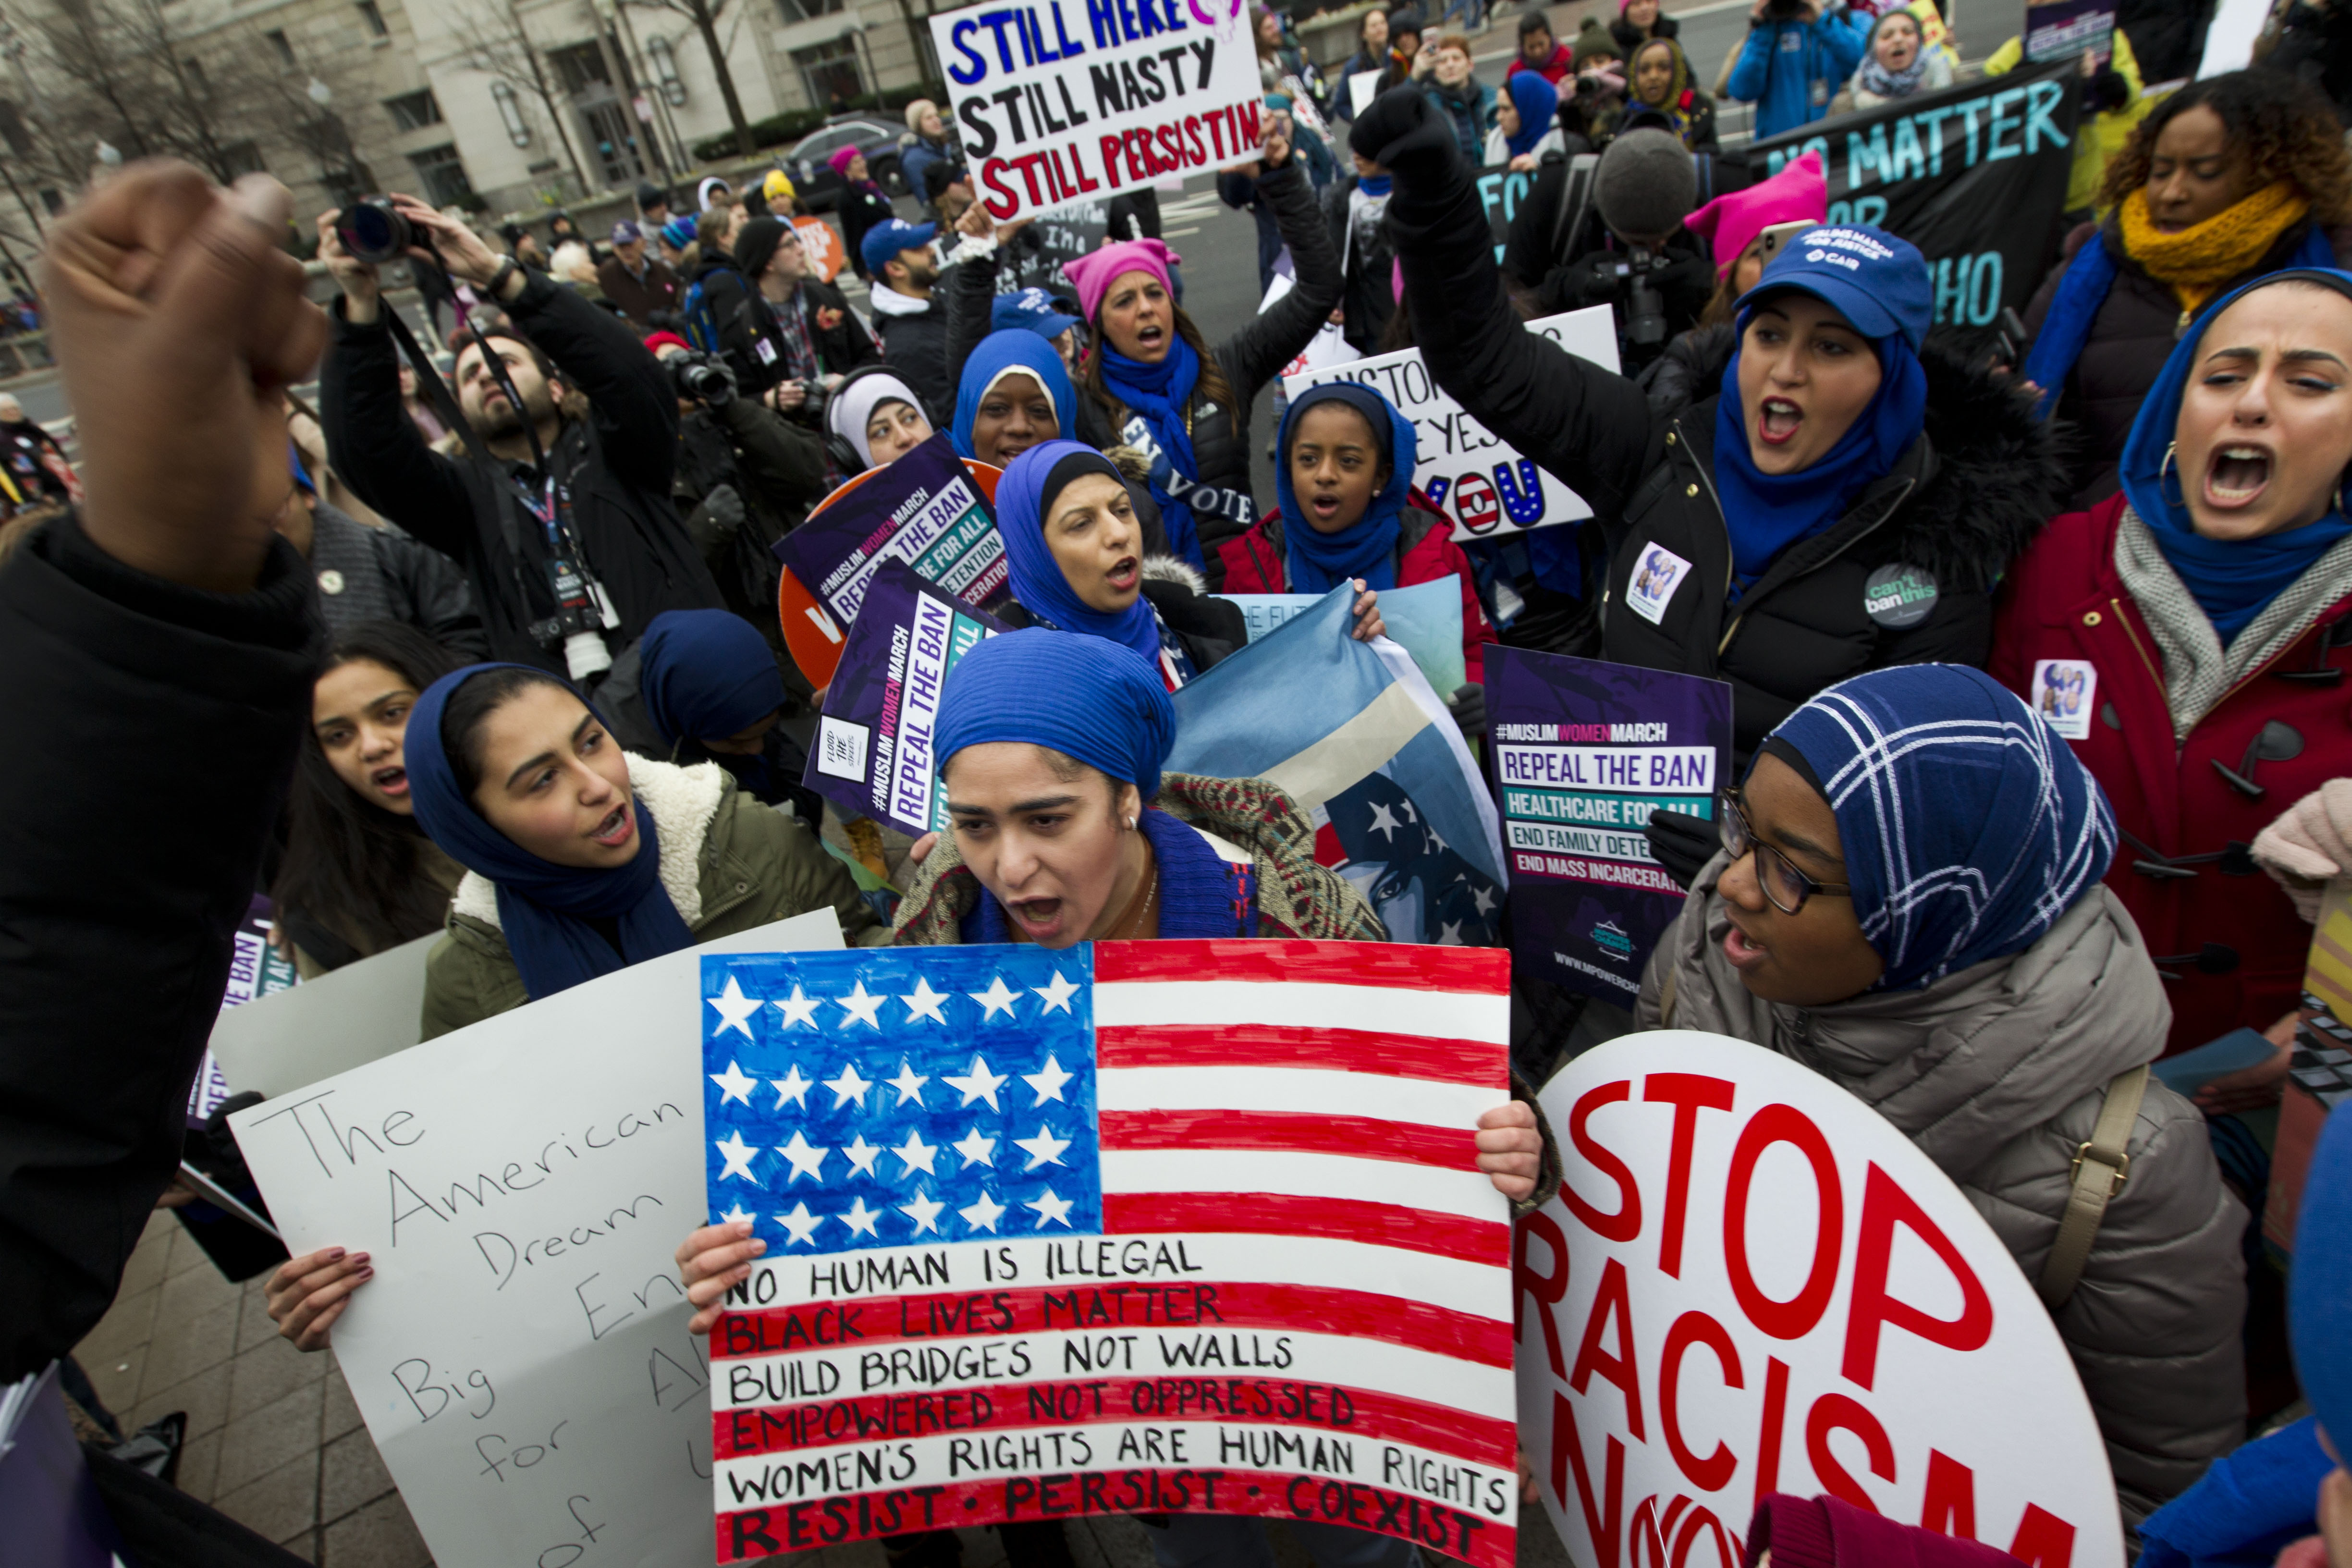 A group hold up signs at freedom plaza during the women's march in Washington on Saturday, Jan. 19, 2019. (AP Photo/Jose Luis Magana)